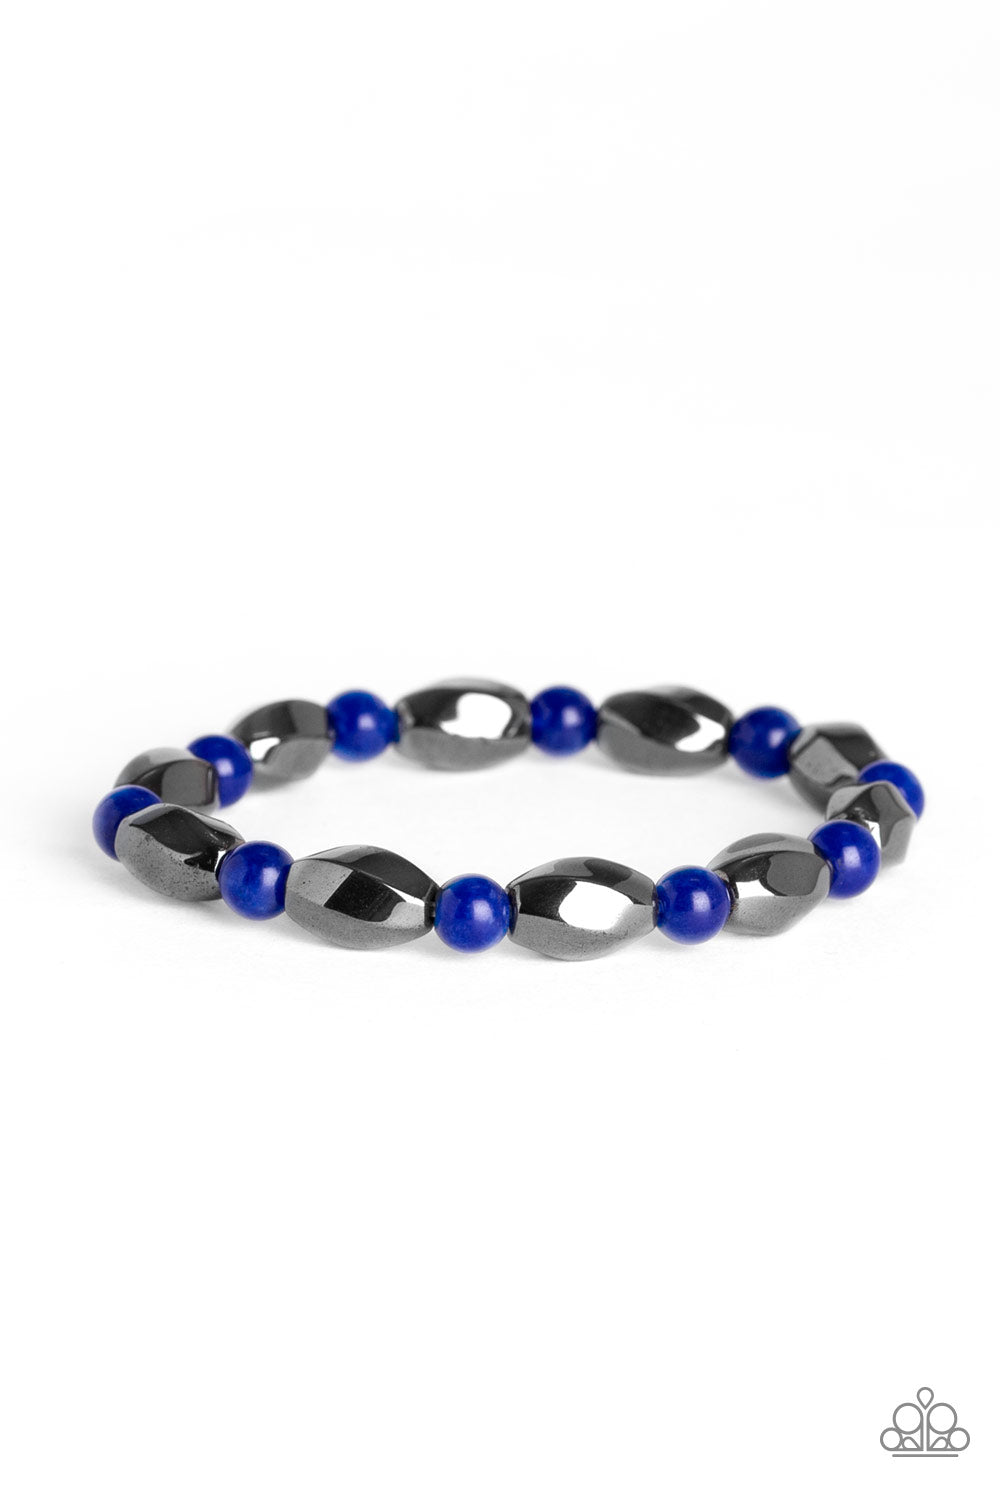 Paparazzi Bracelet - To Each Their Own - Blue - New Release